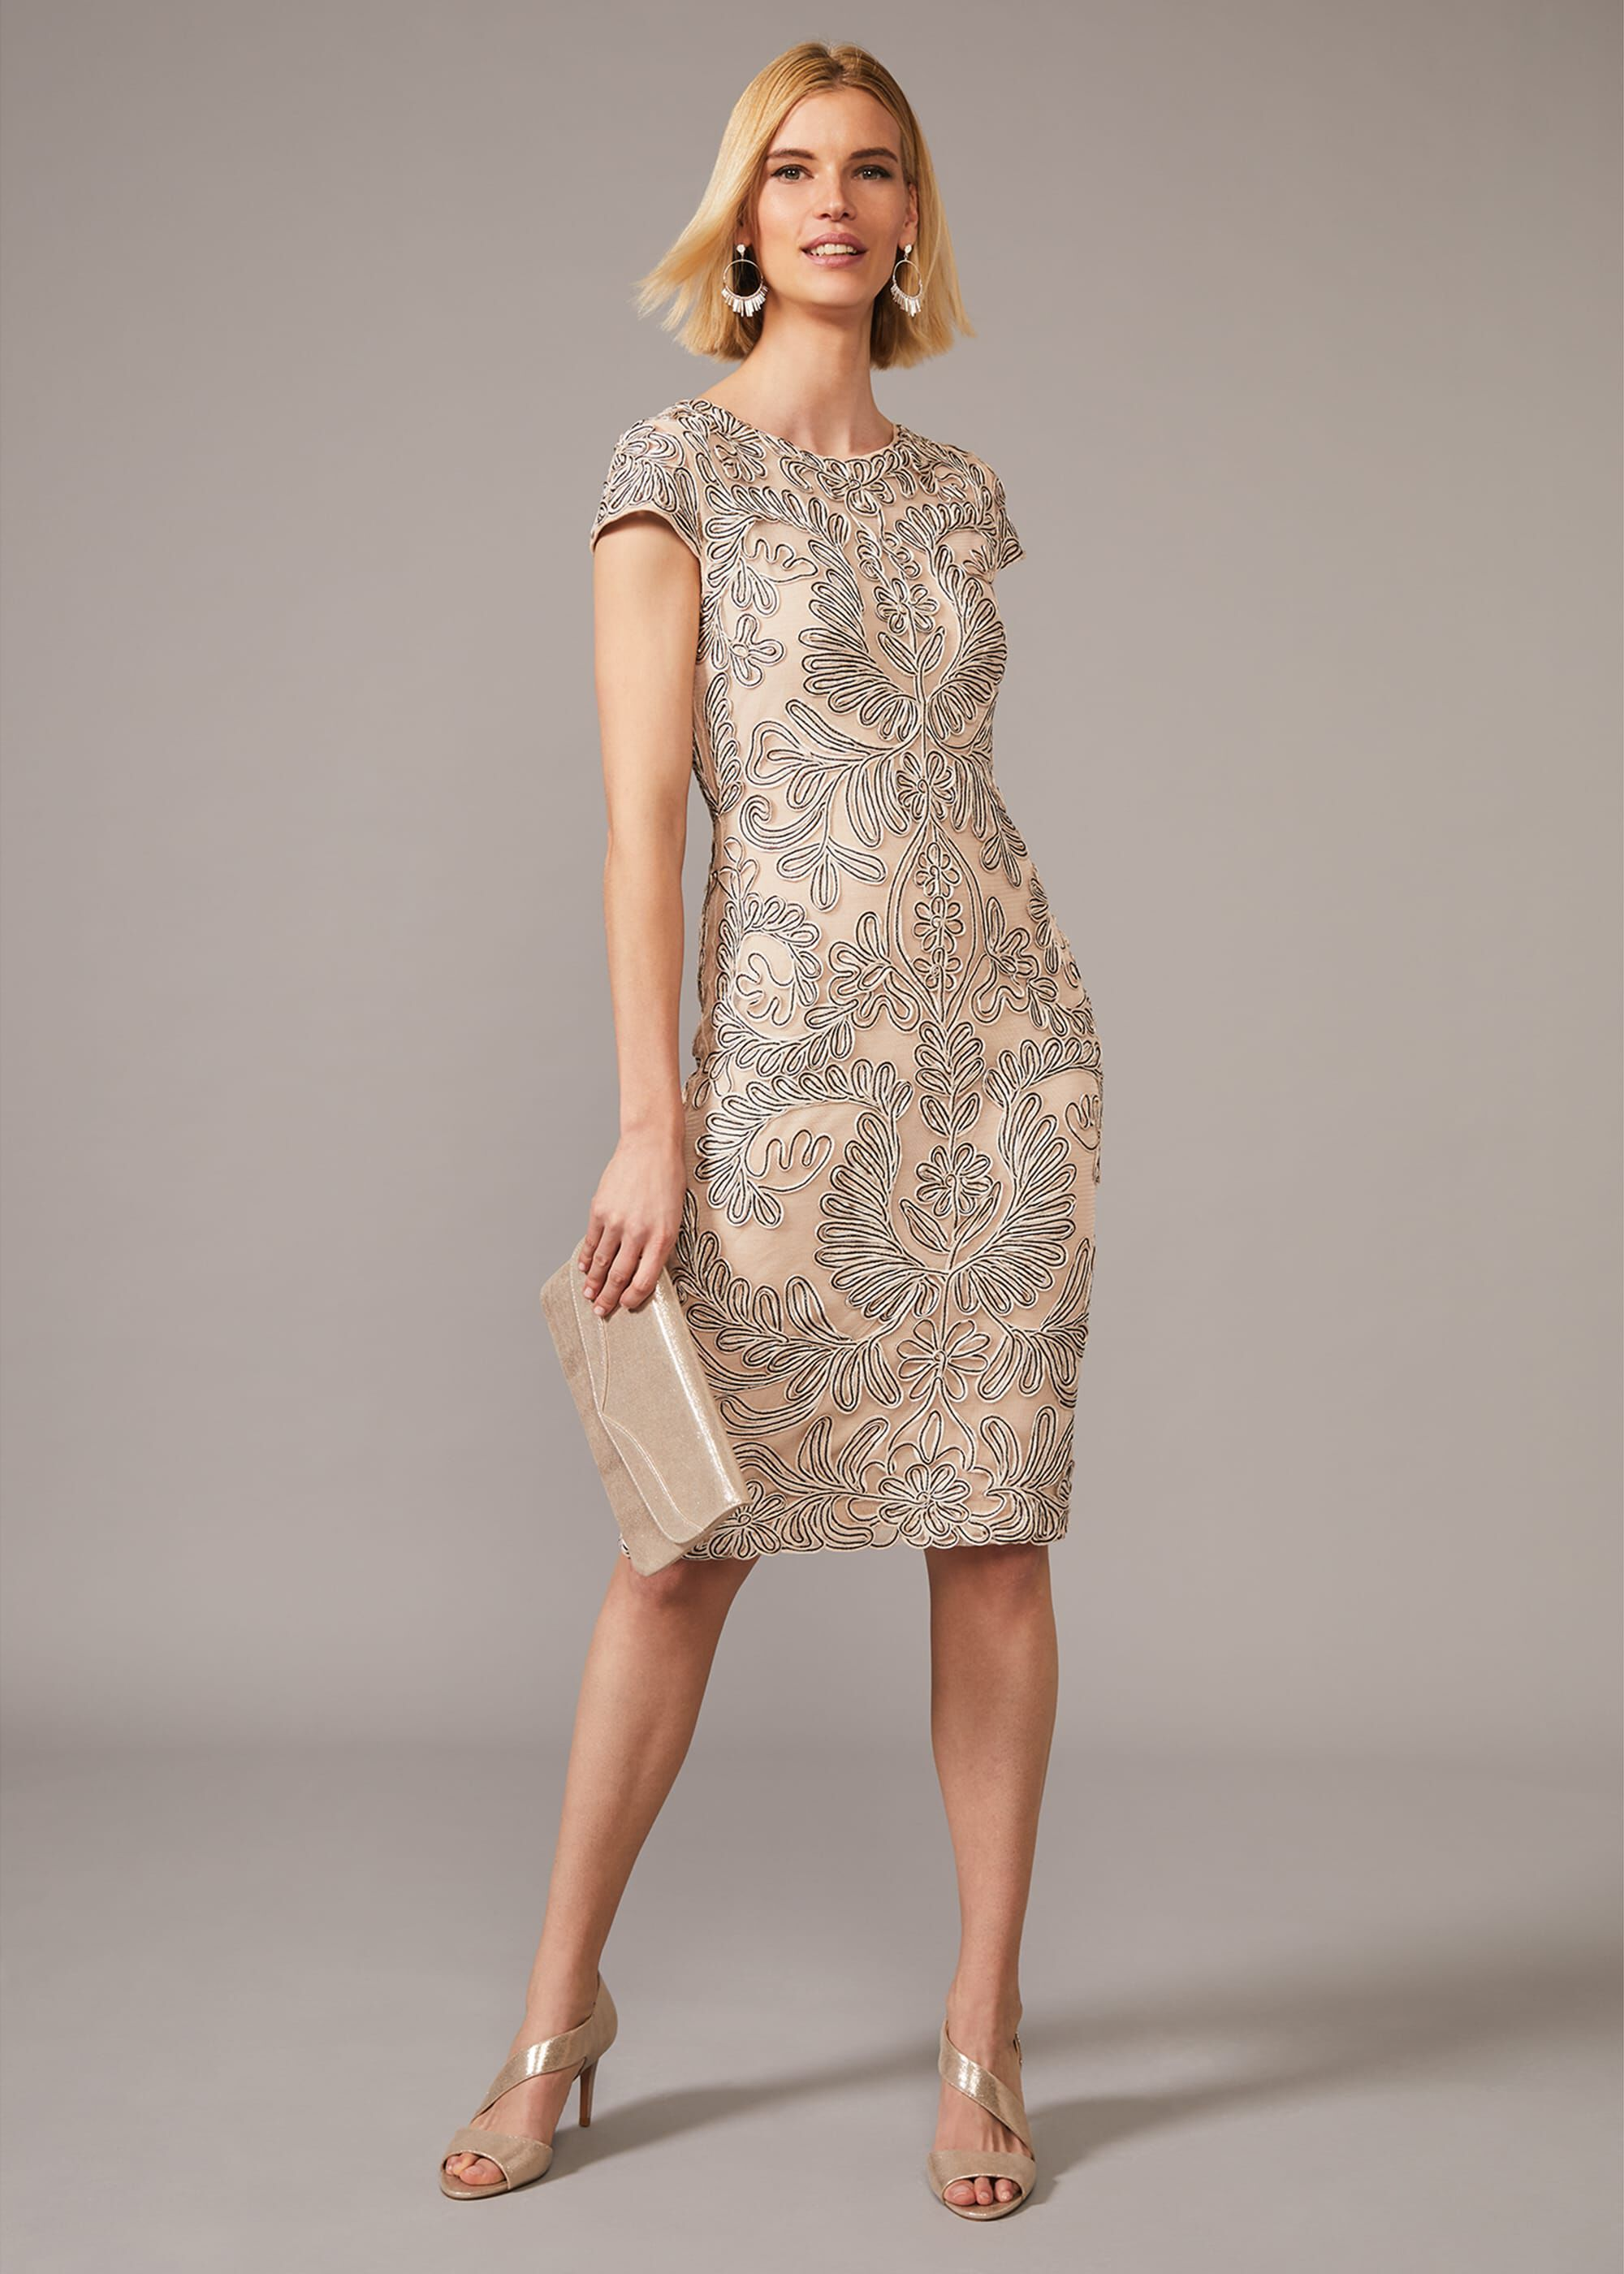 Phase Eight Genevieve Tapework Lace Dress, Cream, Occasion Dress